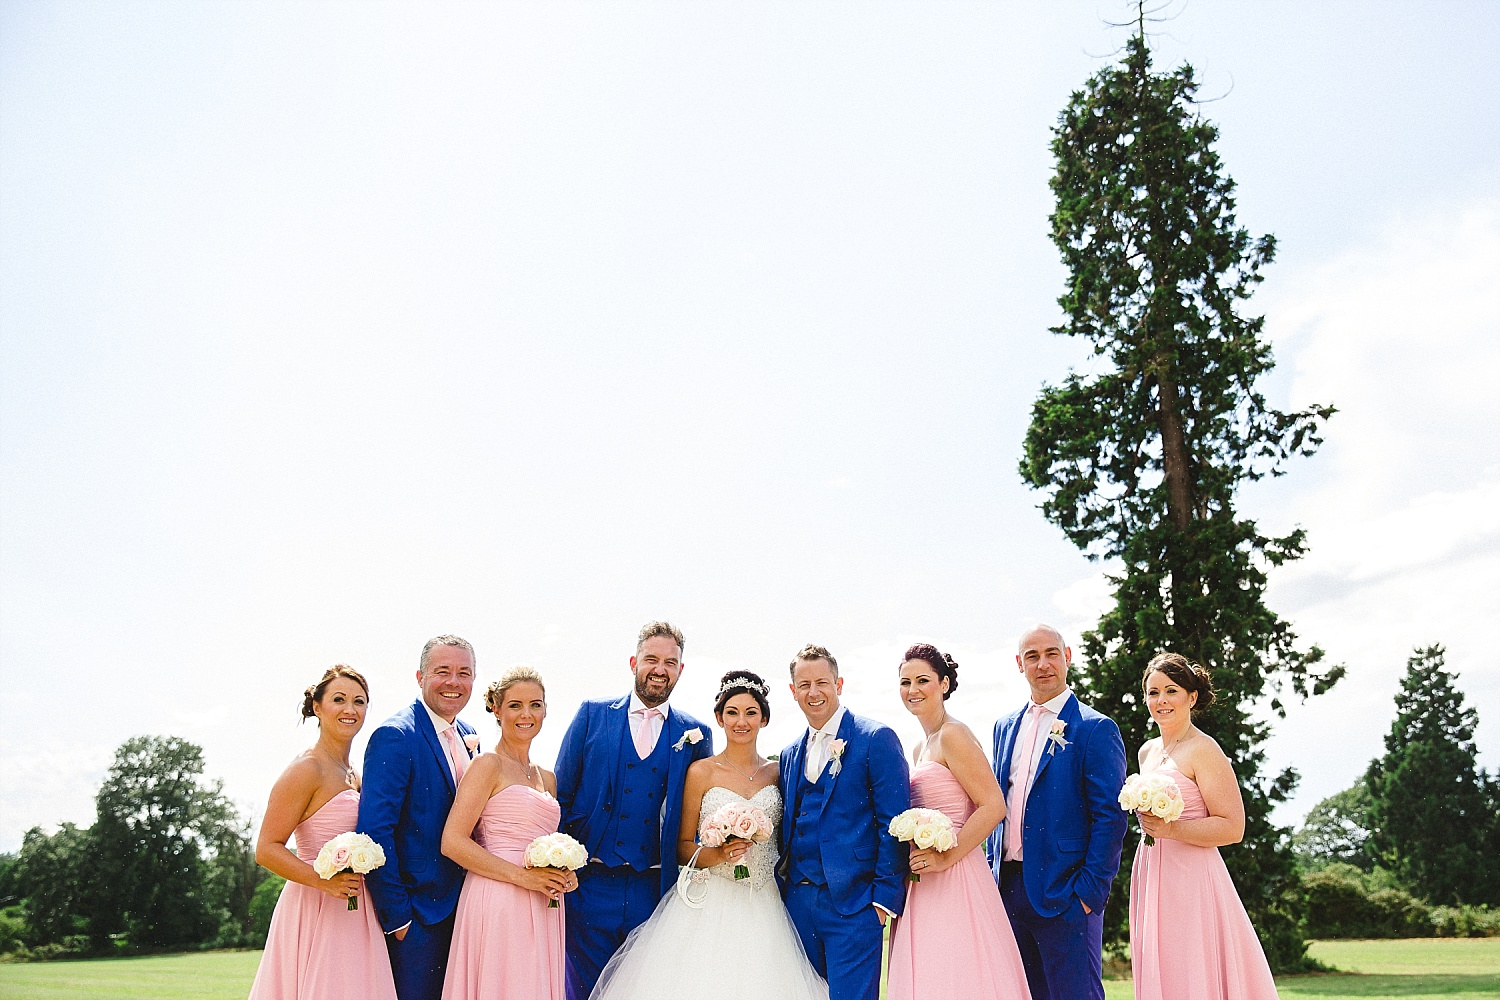 Gosfield_Hall_Essex_Wedding_Photographer_0067.jpg